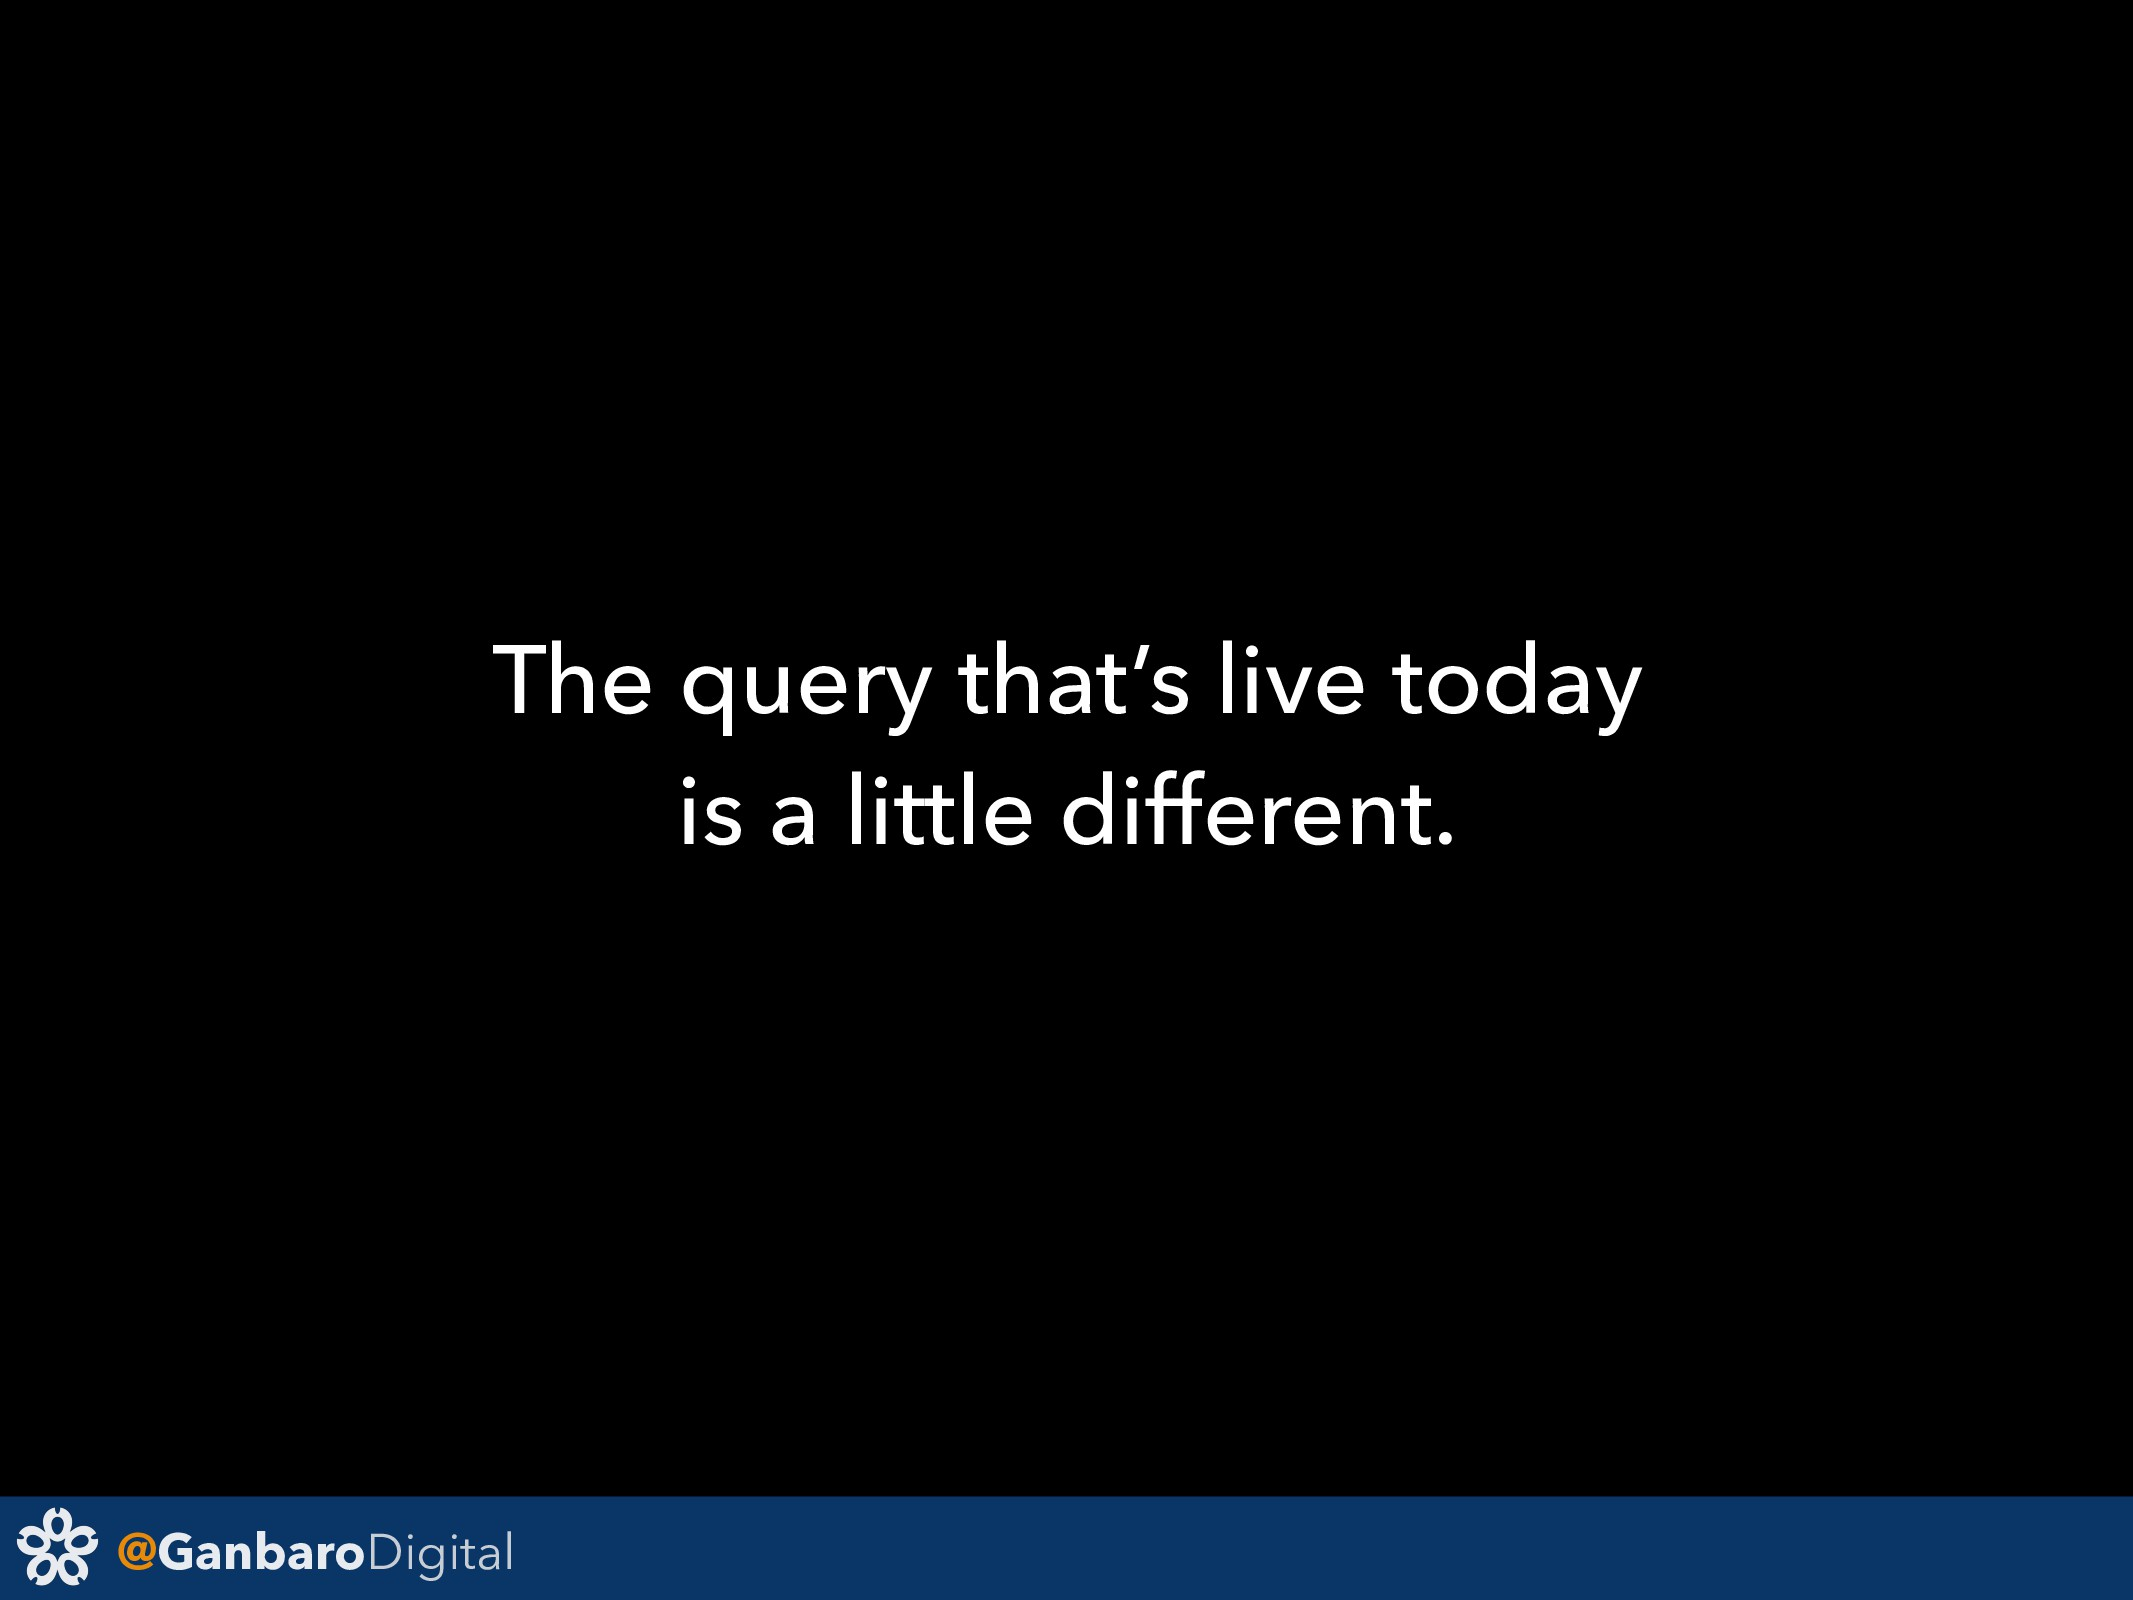 @GanbaroDigital The query that's live today is ...